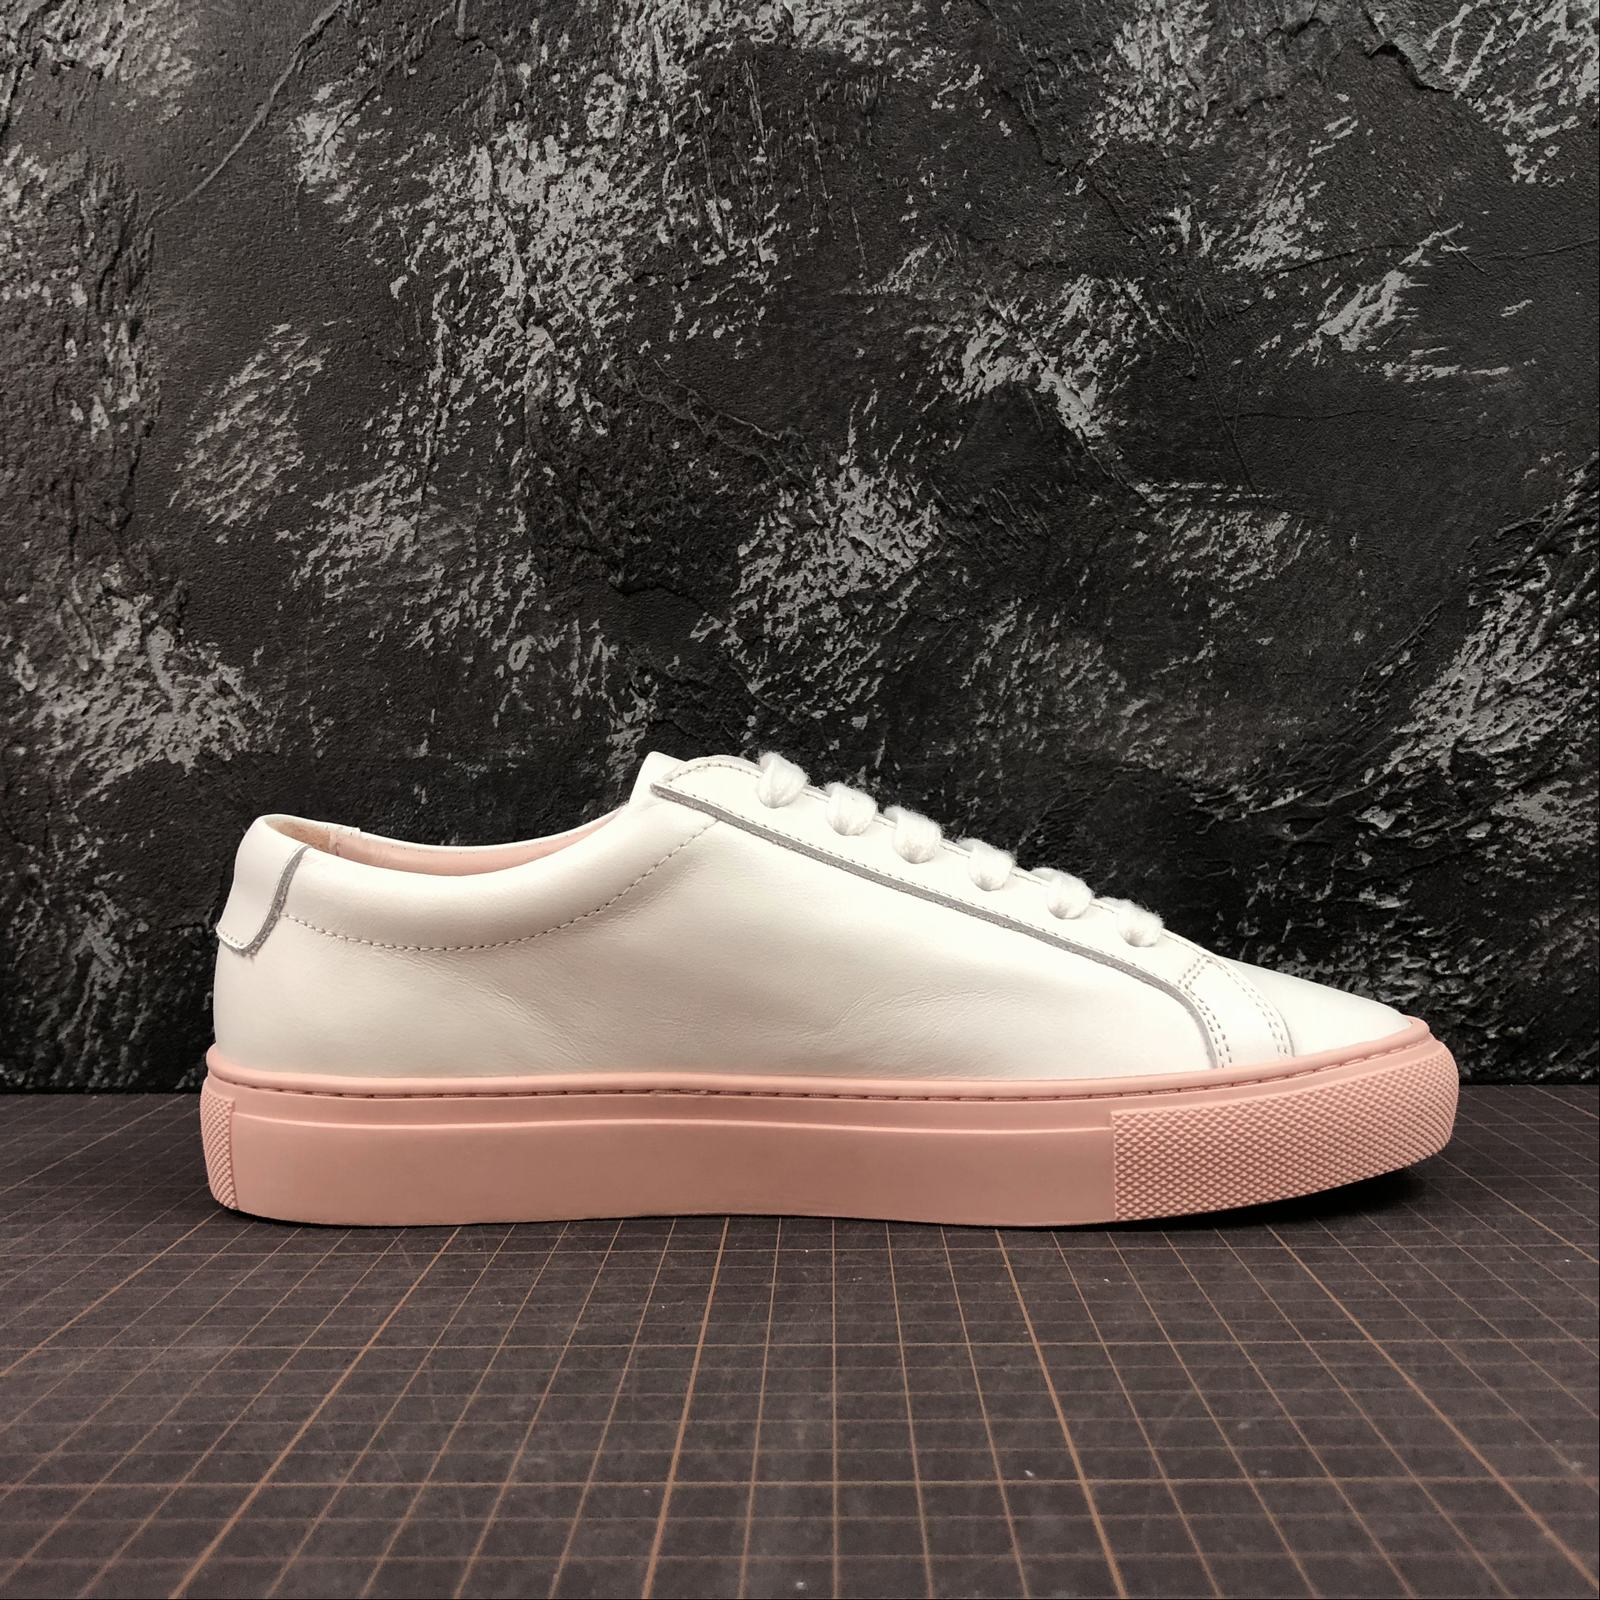 Женские кеды  Common Projects Achilles Low-Top Women White,Pink - фото №2